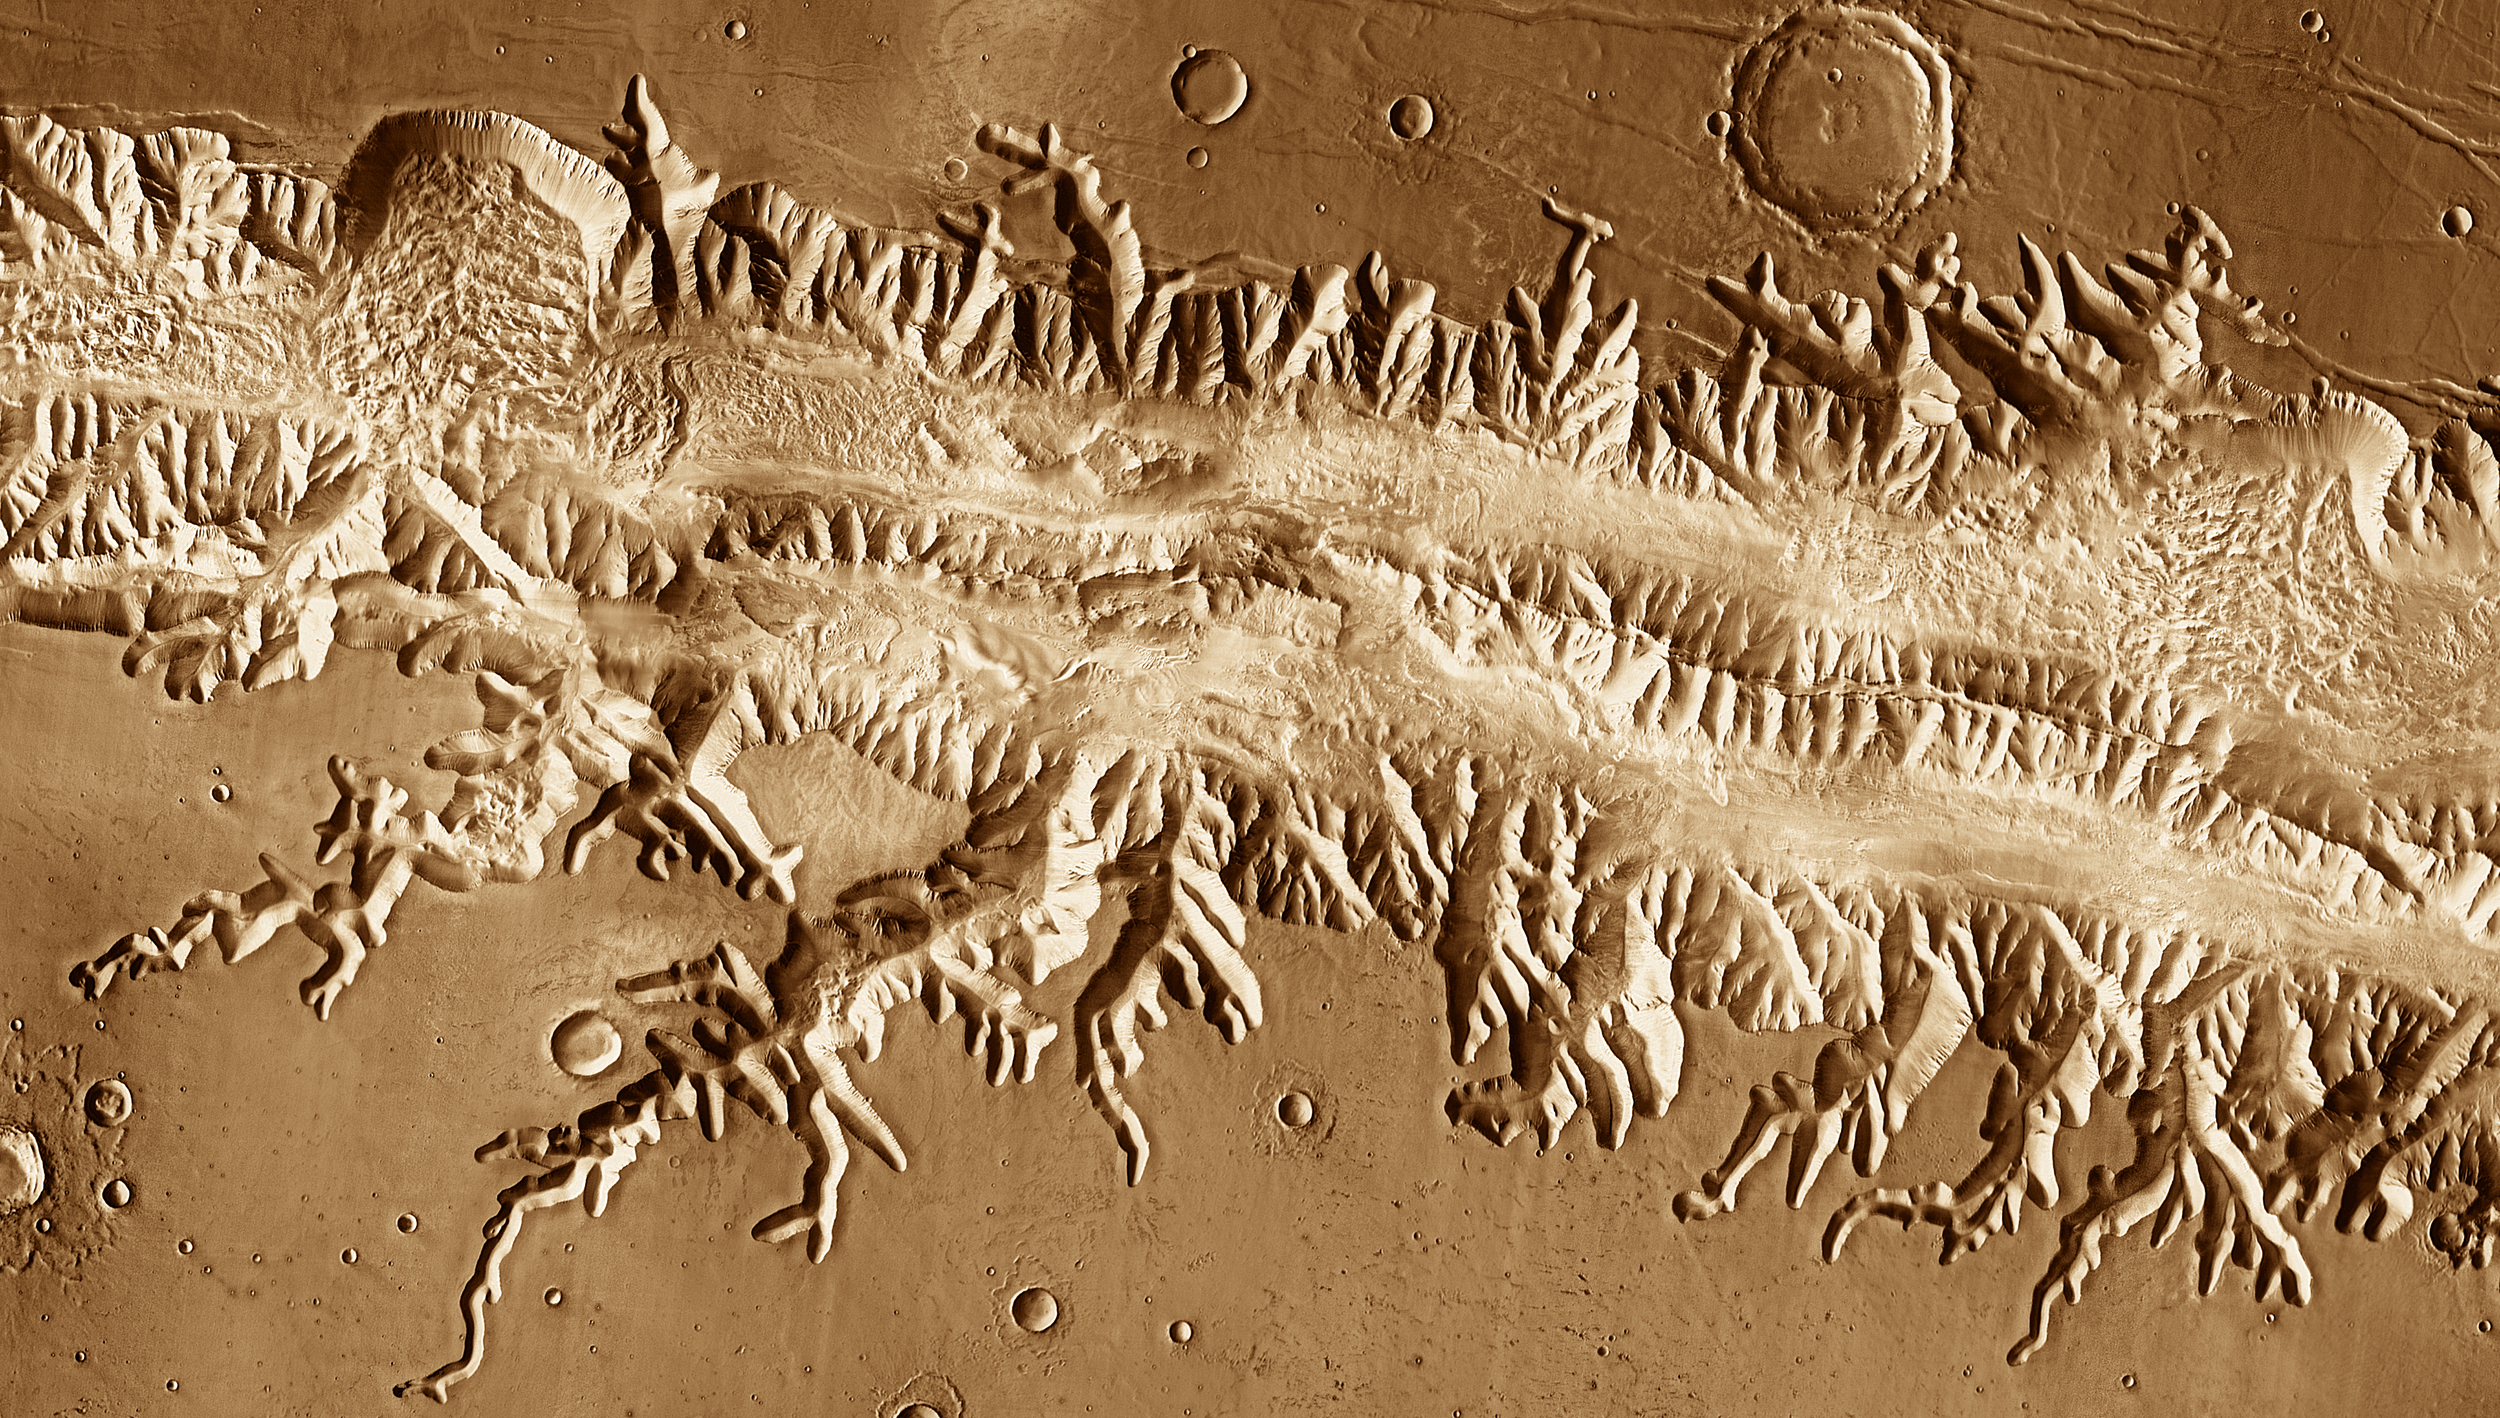 Valles Marineris:  With a length great enough to stretch from New York to Los Angeles, Valles Marineris is the Grand Canyon of Mars.  Scientists think the canyons cutting into the rim developed as subsurface water escaped and the ground collapsed, a process called  sapping.   This image was acquired in July 2005   by the Thermal Emission Imaging System instrument on NASA's Mars Odyssey orbiter.